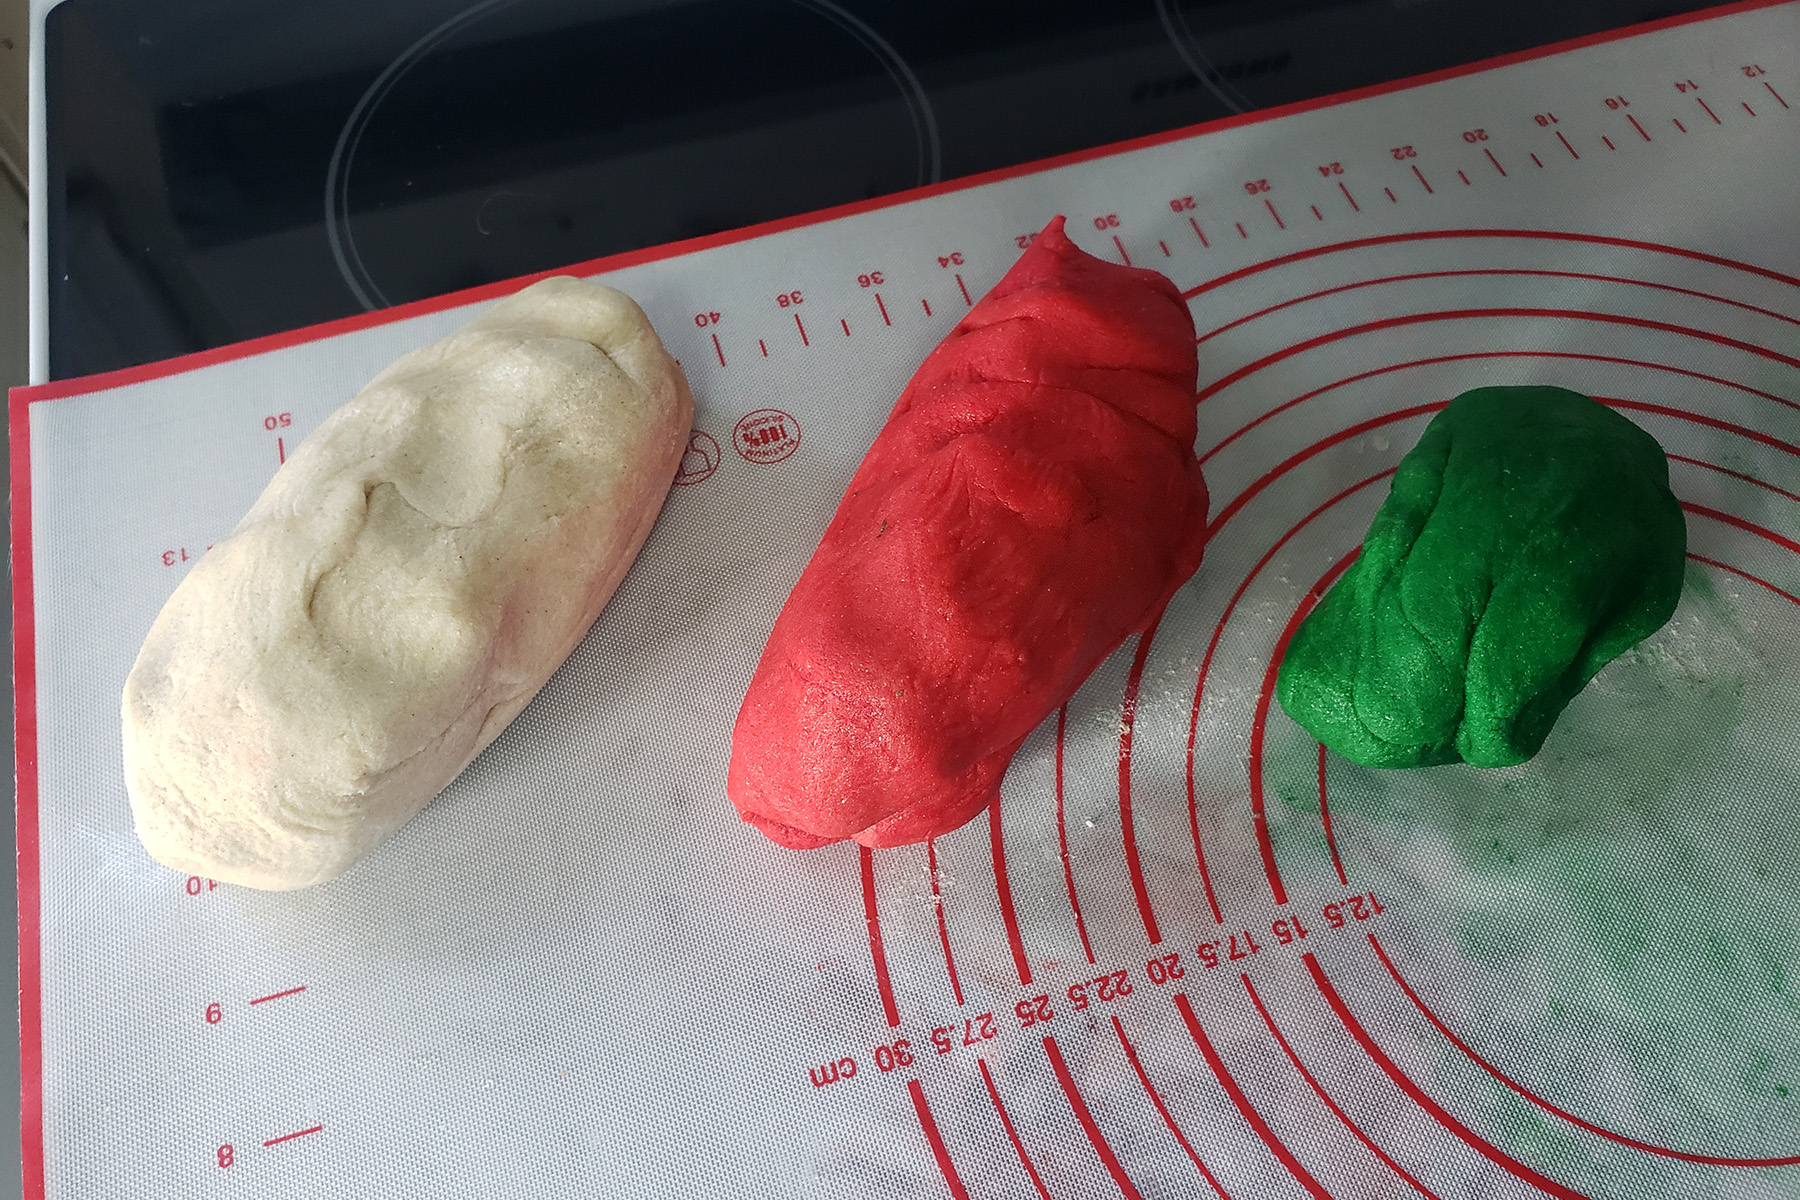 Lumps of white, red, and green dough rest on a silicone baking mat.